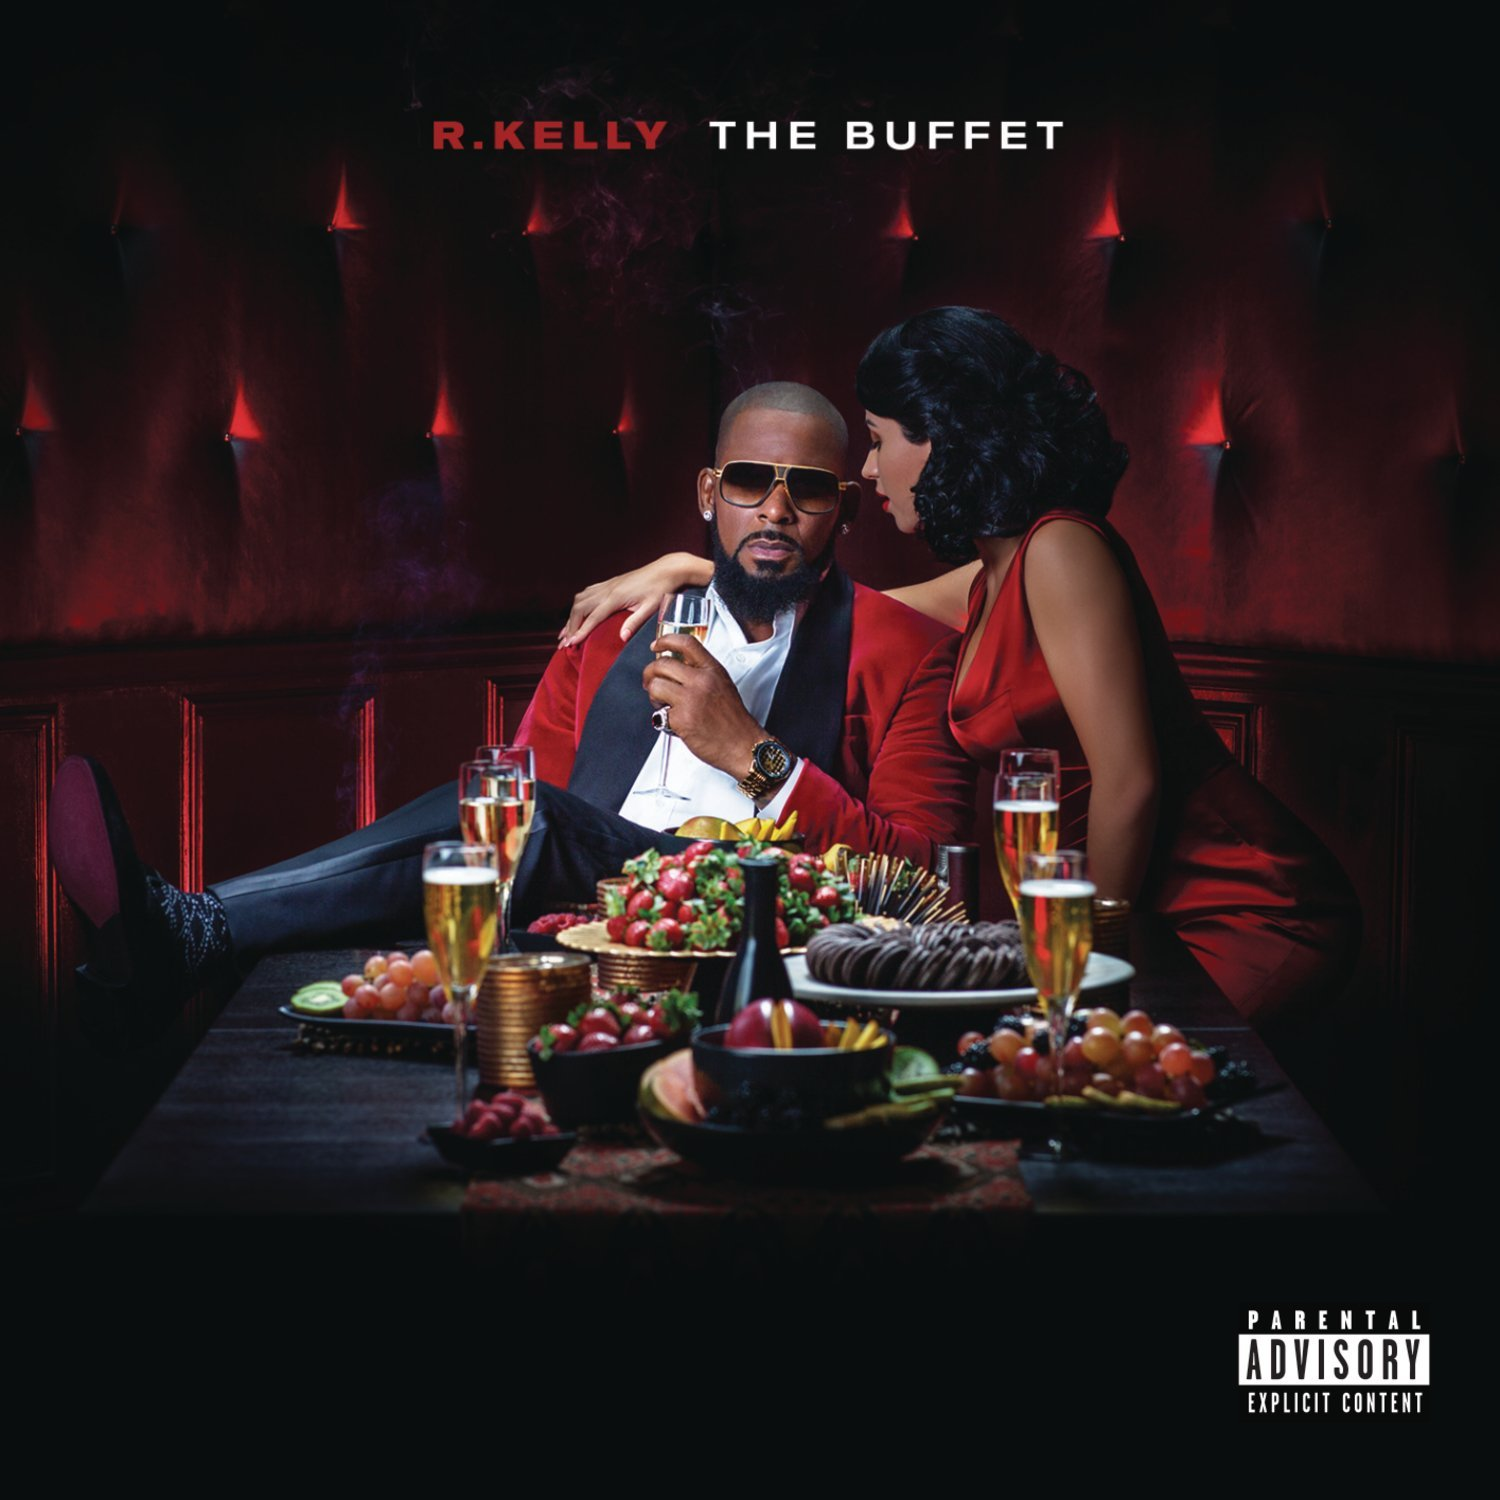 R. Kelly Up to His Old Tricks on 'The Buffet'